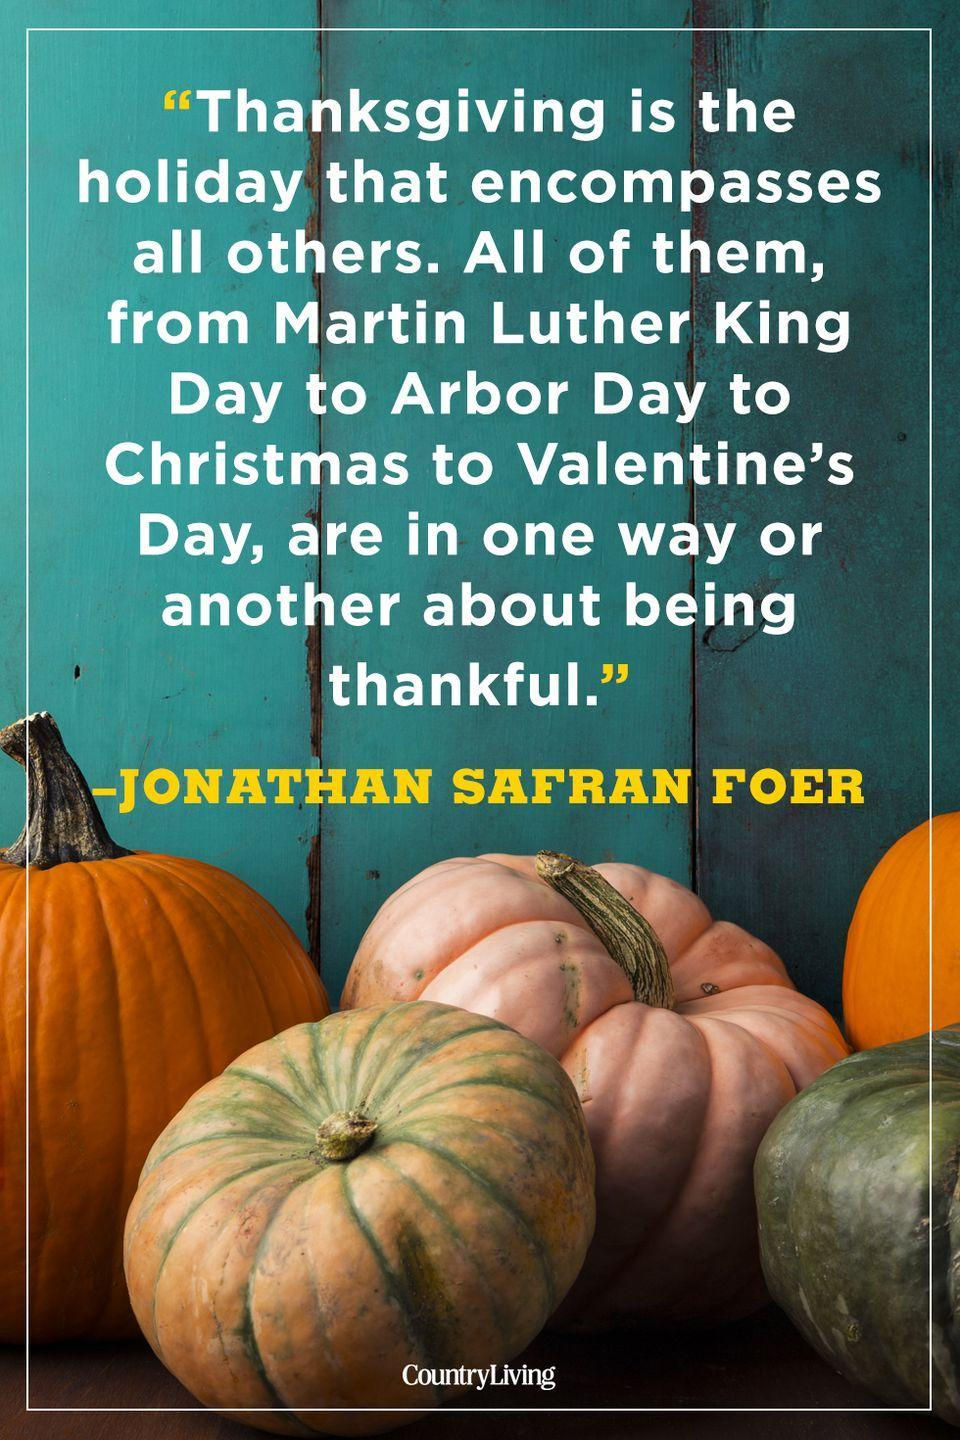 """<p>""""Thanksgiving is the holiday that encompasses all others. All of them, from Martin Luther King Day to Arbor Day to Christmas to Valentine's Day, are in one way or another about being thankful.""""</p><p><strong>RELATED: </strong><a href=""""https://www.countryliving.com/food-drinks/g637/thanksgiving-menus/"""" rel=""""nofollow noopener"""" target=""""_blank"""" data-ylk=""""slk:Easy-to-Make Complete Thanksgiving Menus"""" class=""""link rapid-noclick-resp"""">Easy-to-Make Complete Thanksgiving Menus</a></p>"""